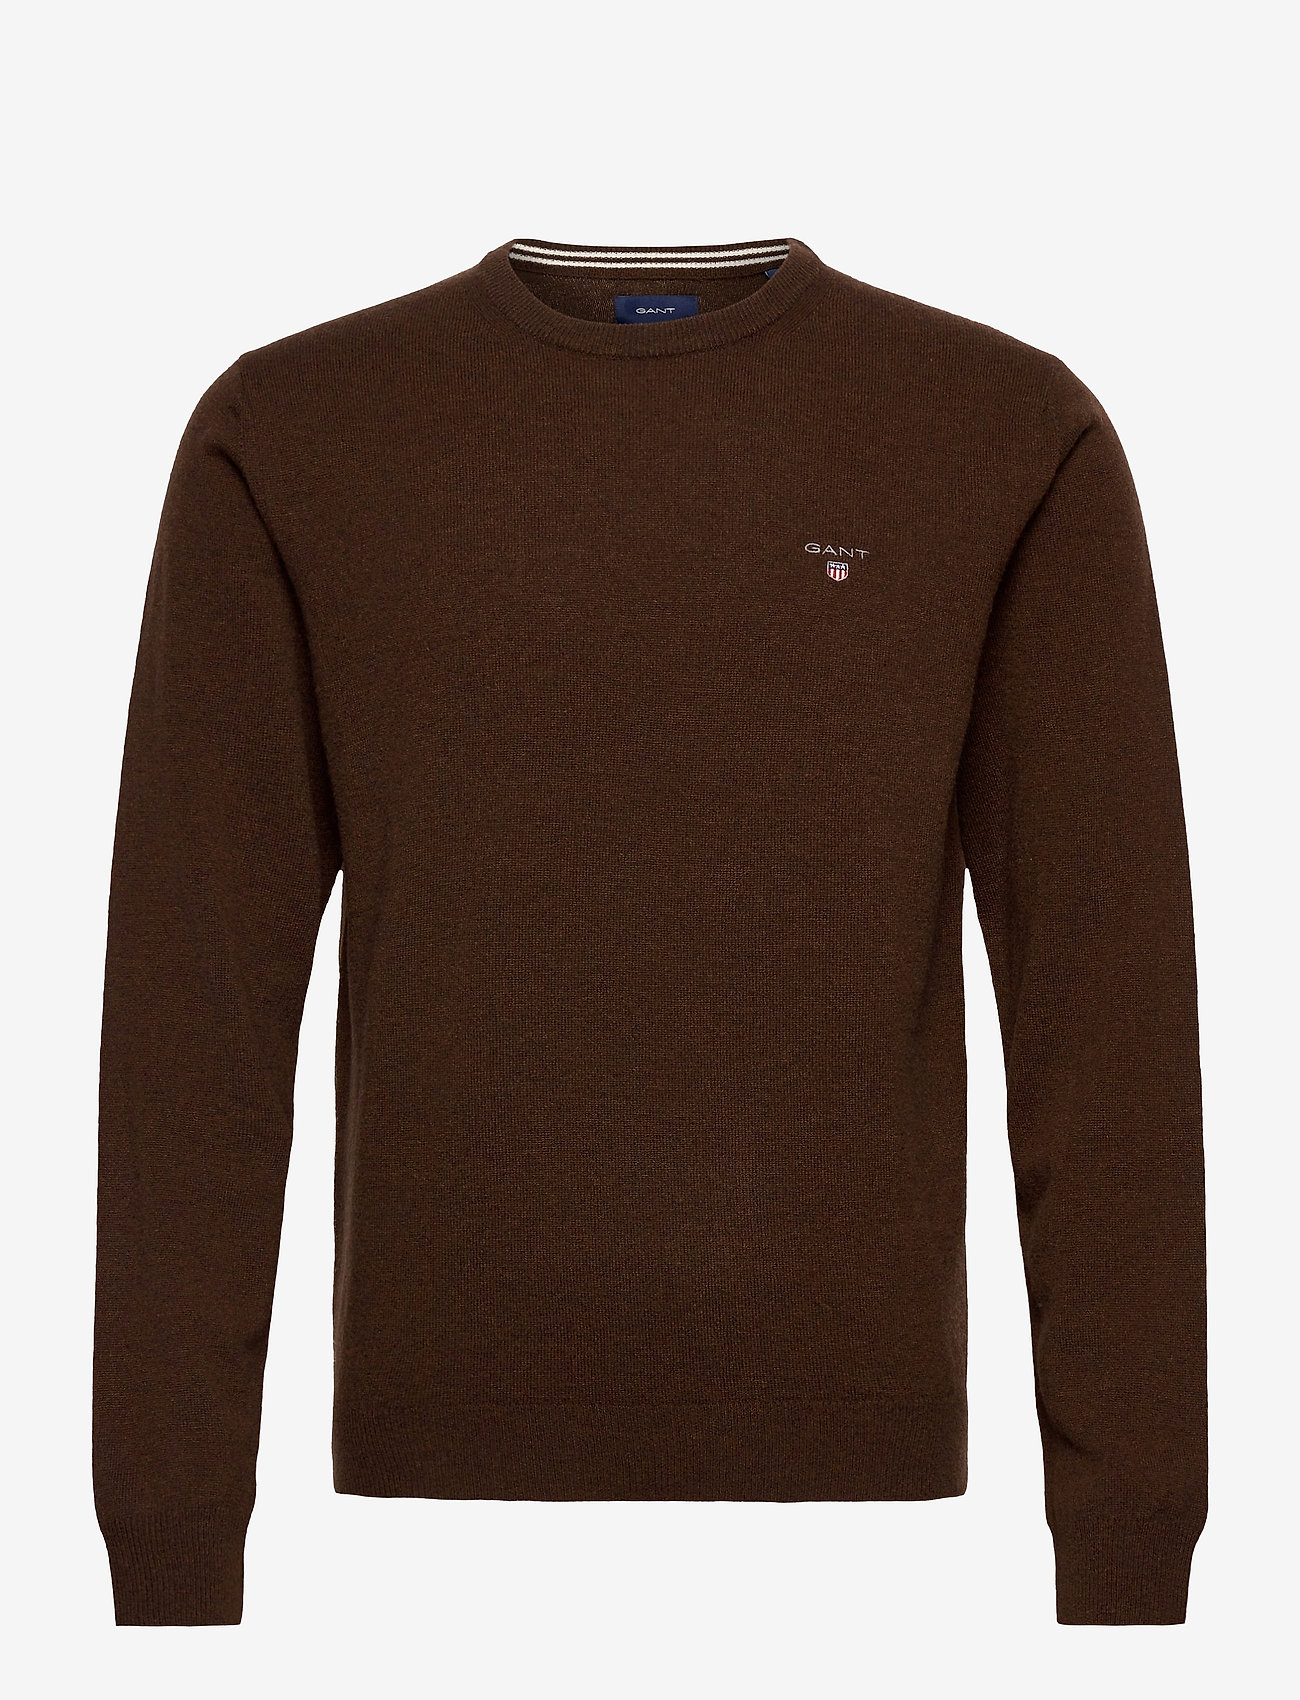 GANT - SUPERFINE LAMBSWOOL CREW - basic knitwear - dk brown melange - 0